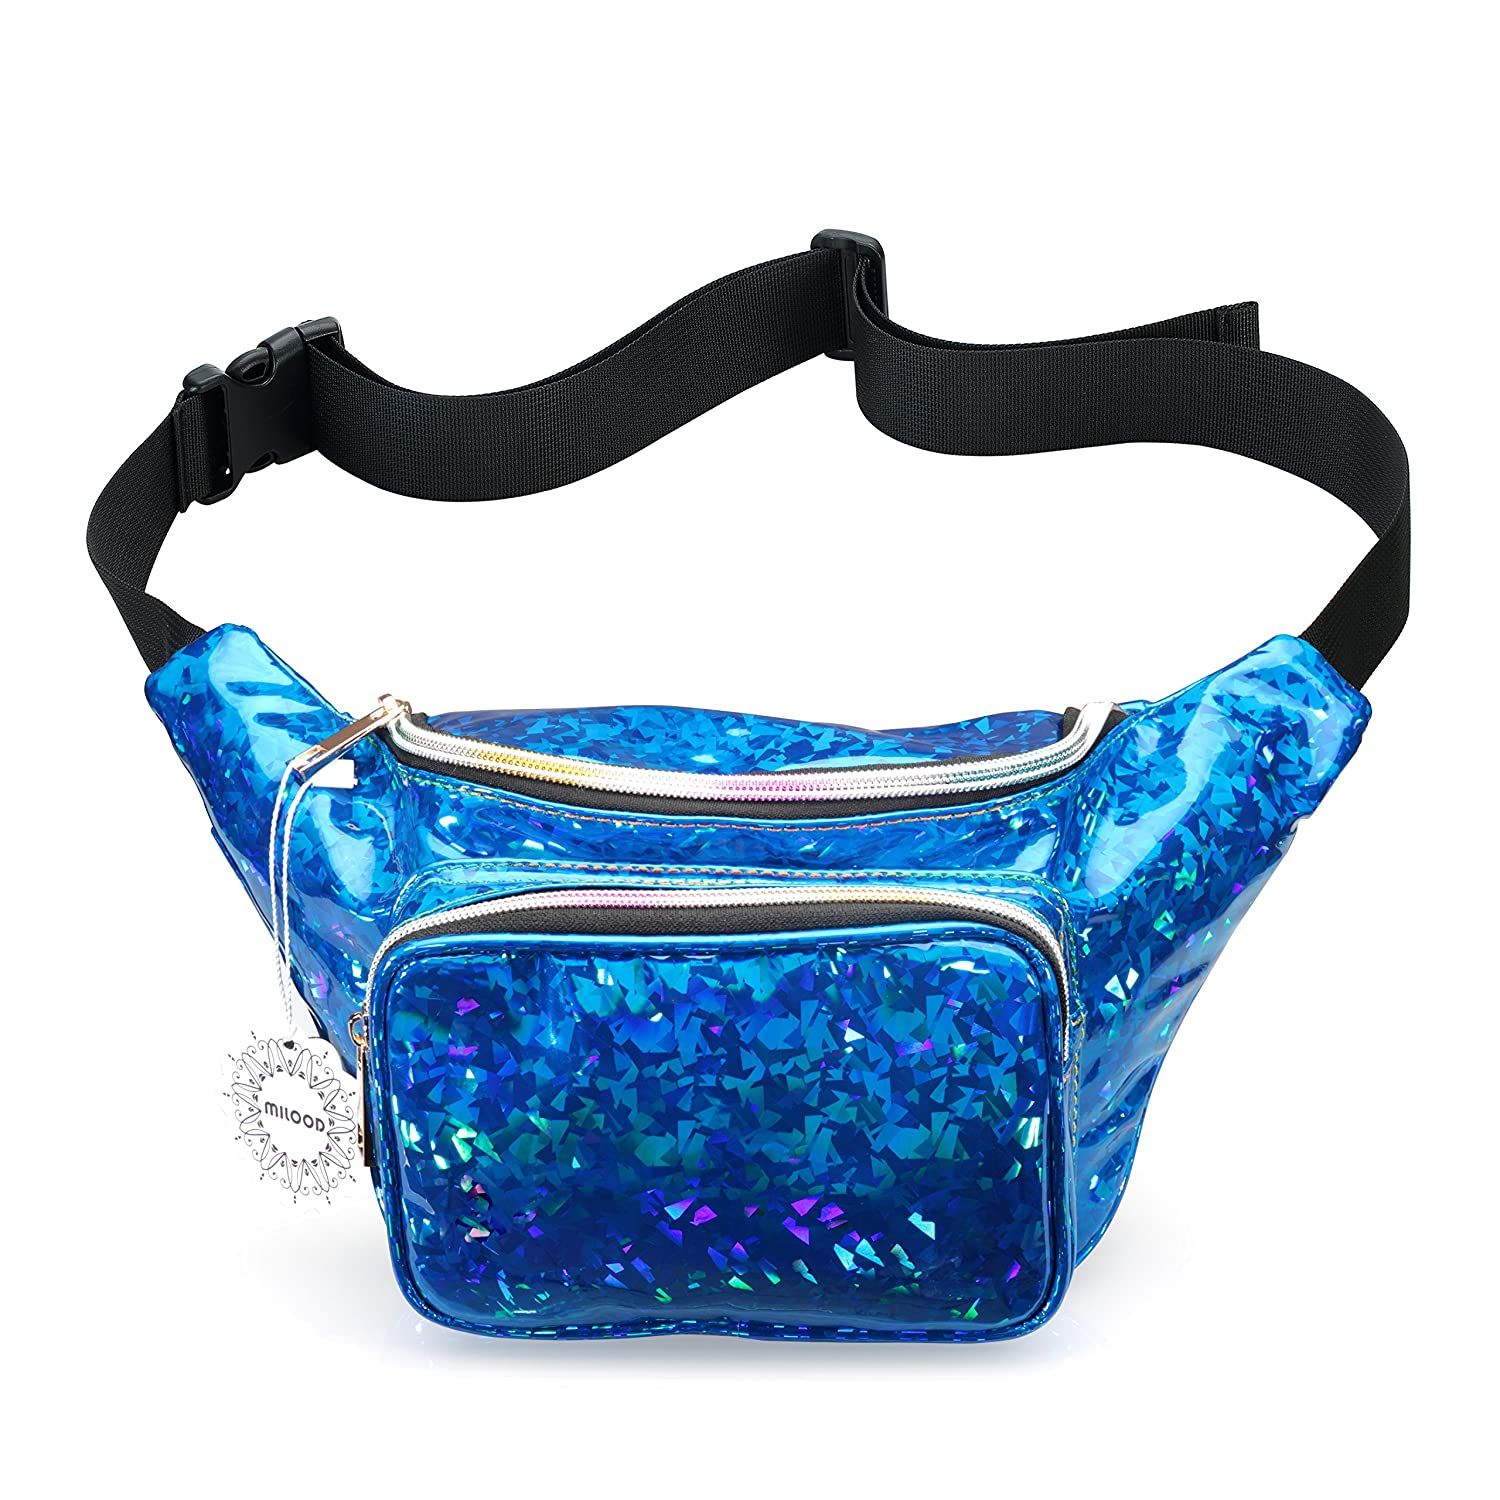 Shiny Neon Fanny Bag for Women Rave Festival Hologram Bum Travel Waist Pack (Black)